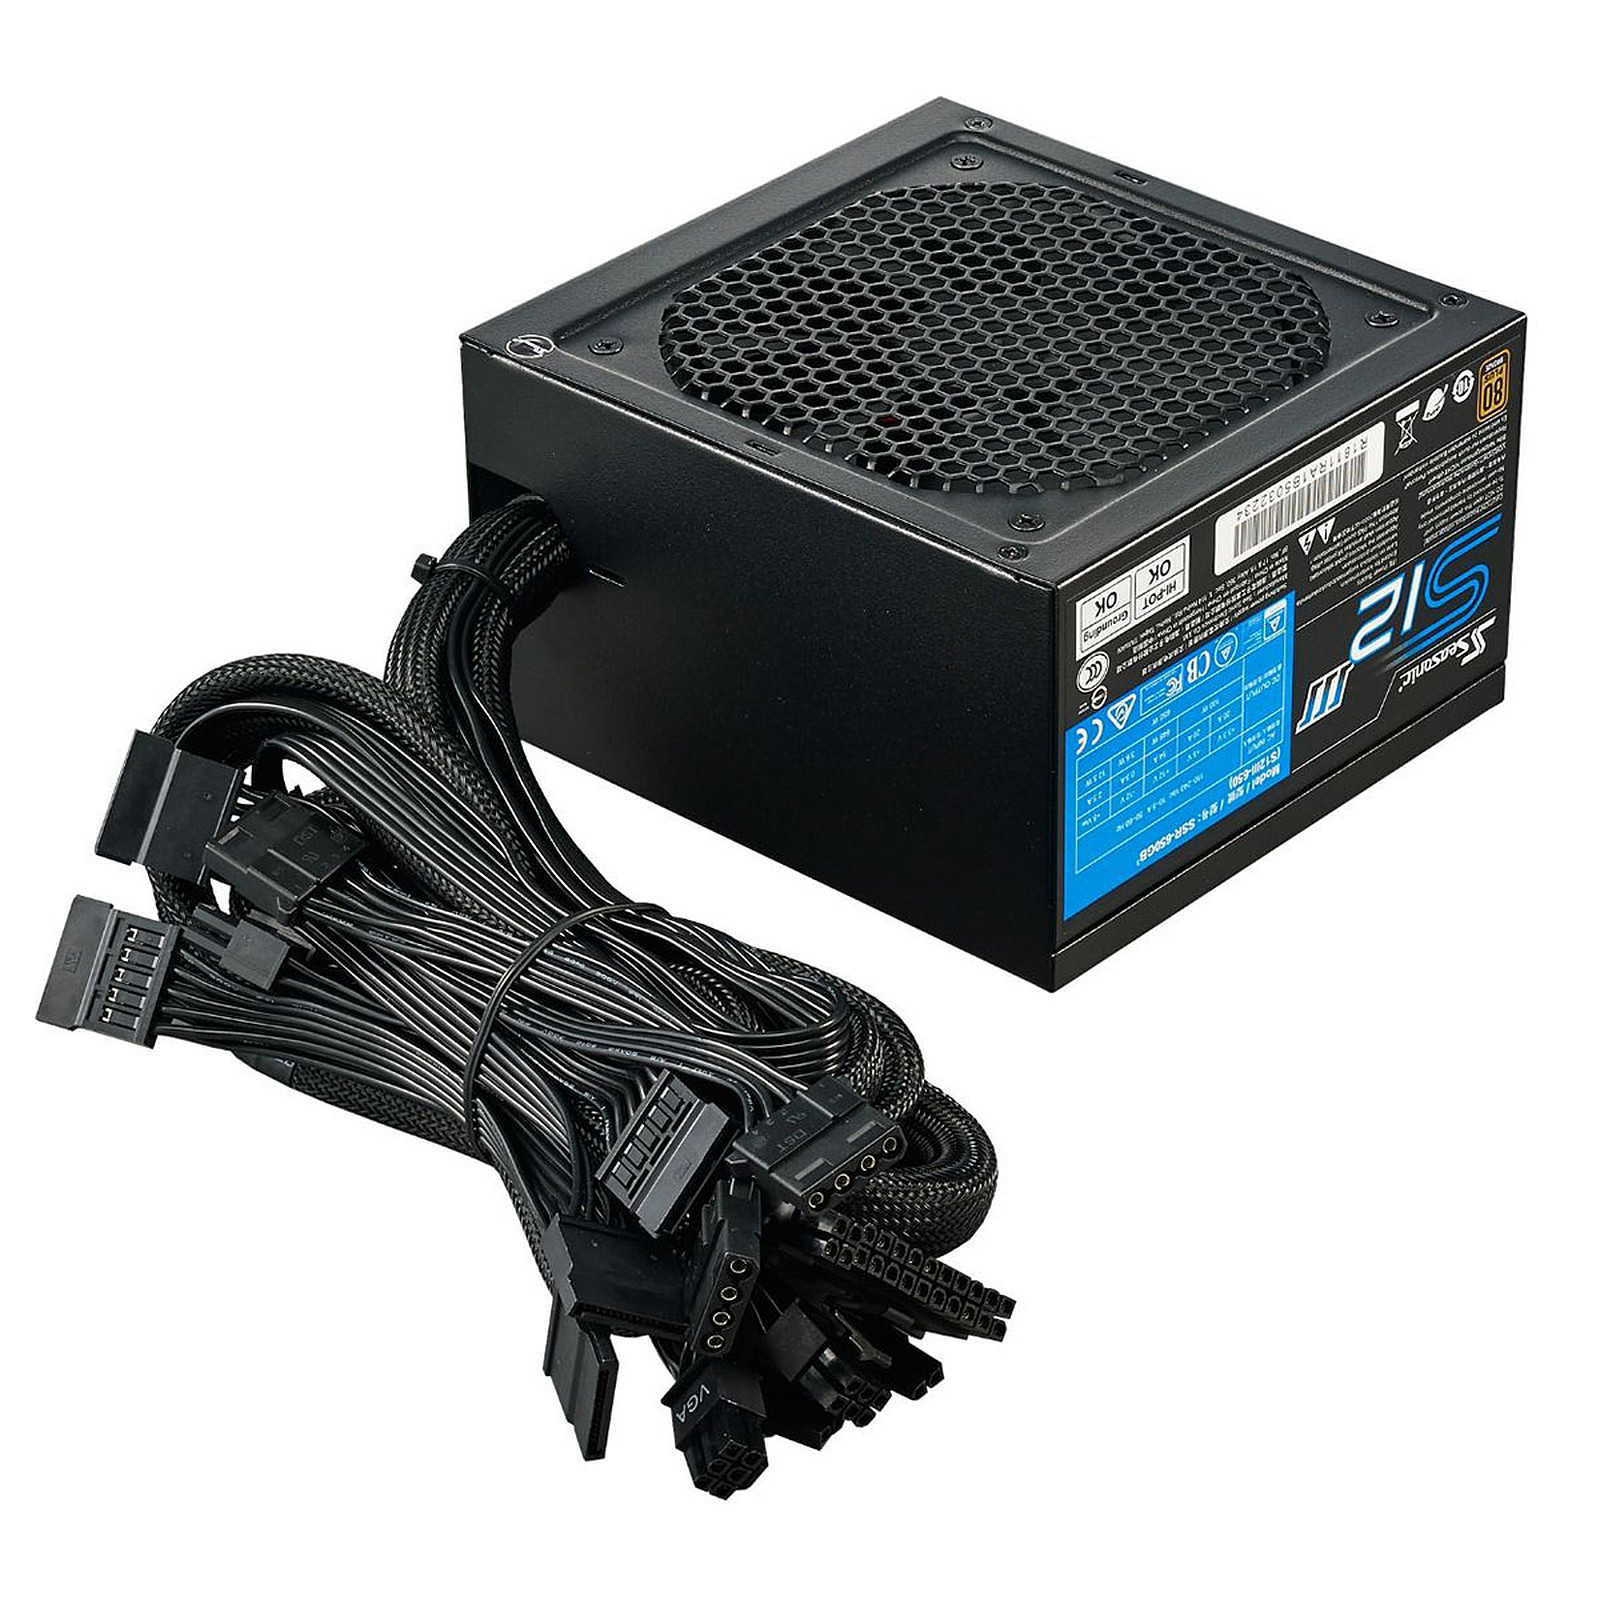 Alimentation PC 650W Seasonic S12III 80 Plus Bronze, informatique ile de la Réunion 974, Futur Réunion Informatique